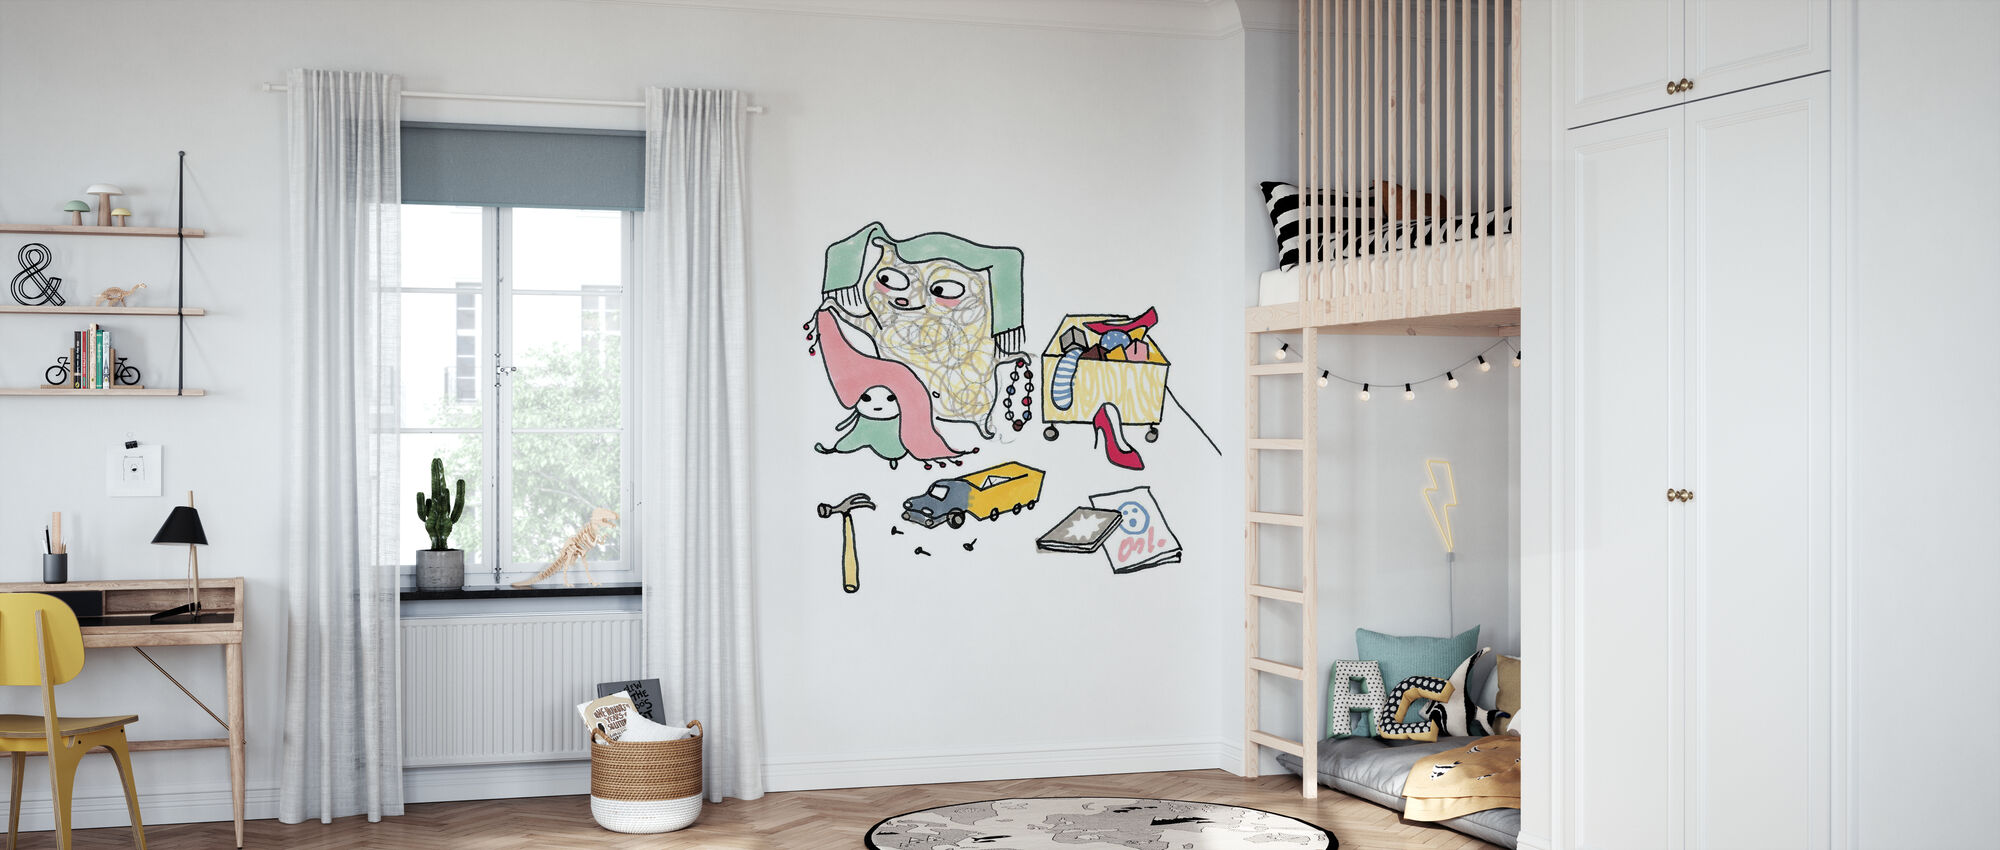 Whose toys - Wallpaper - Kids Room